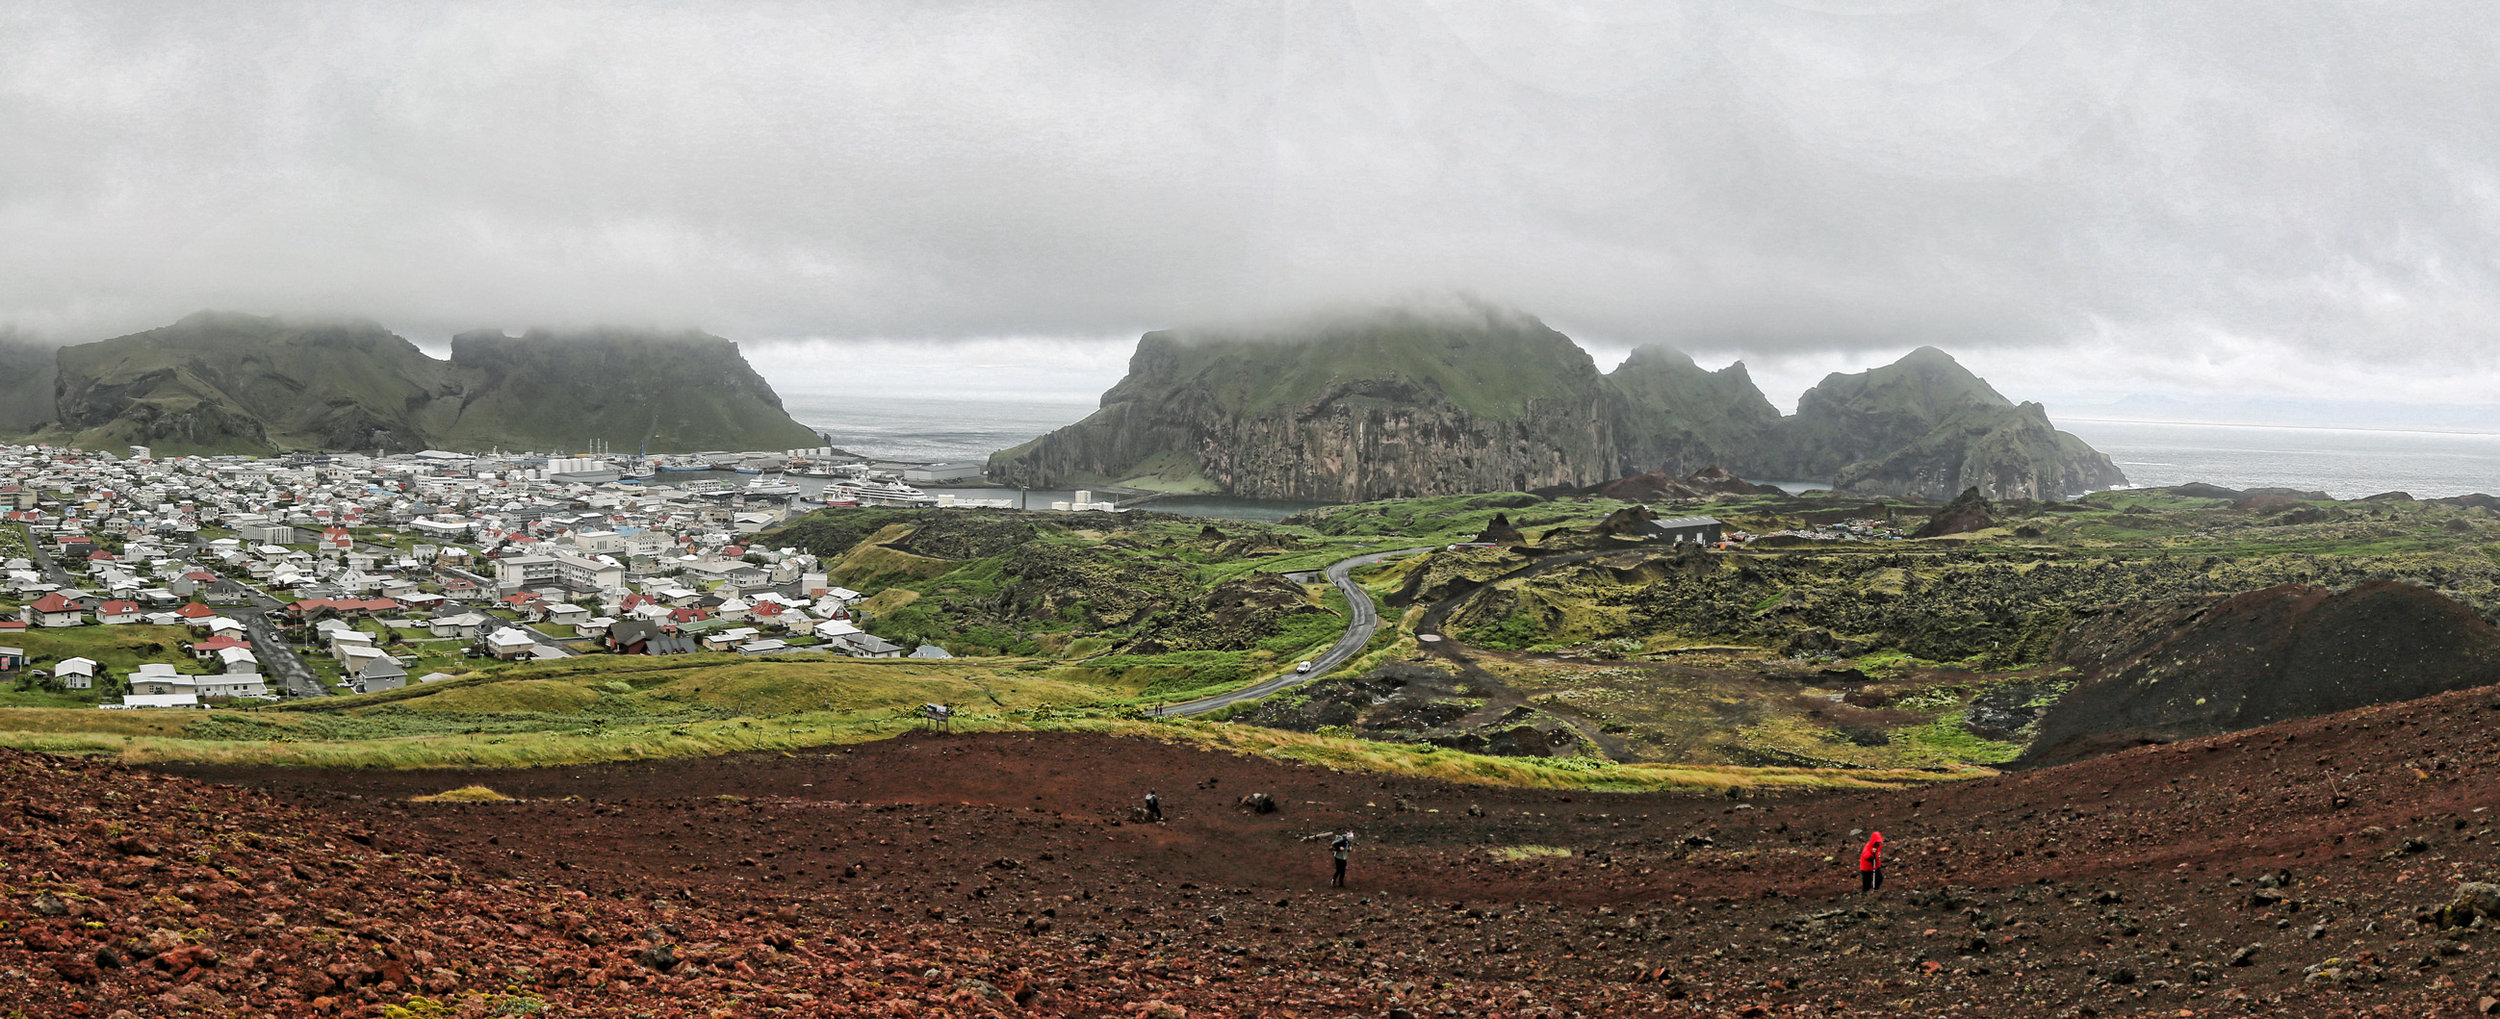 View of Heimaey and harbor from northern flank of Eldfjell volcano.